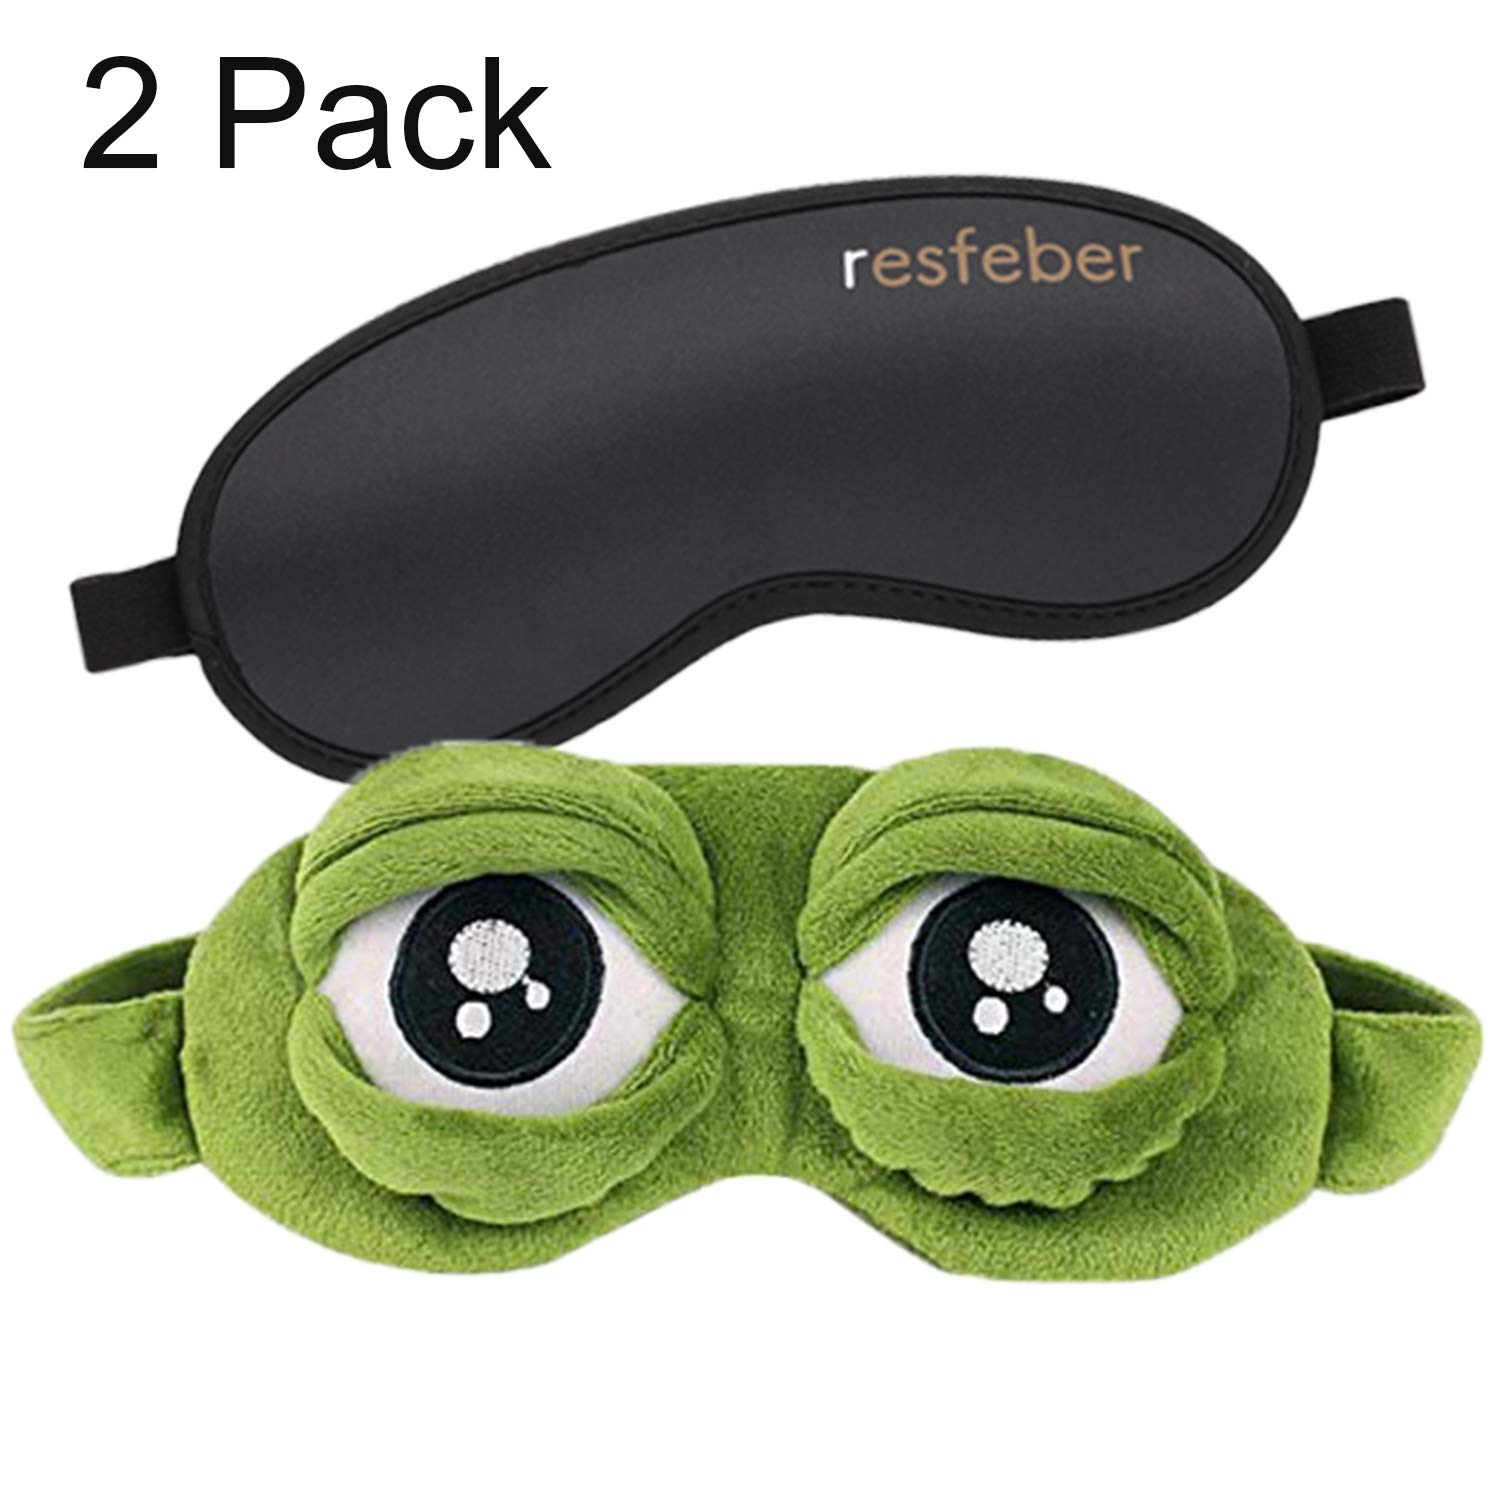 Sleep Mask, Blindfold Eye Mask with Adjustable Head Strap for Sleeping, Travel, Naps (Green) by Resfeber (Image #1)